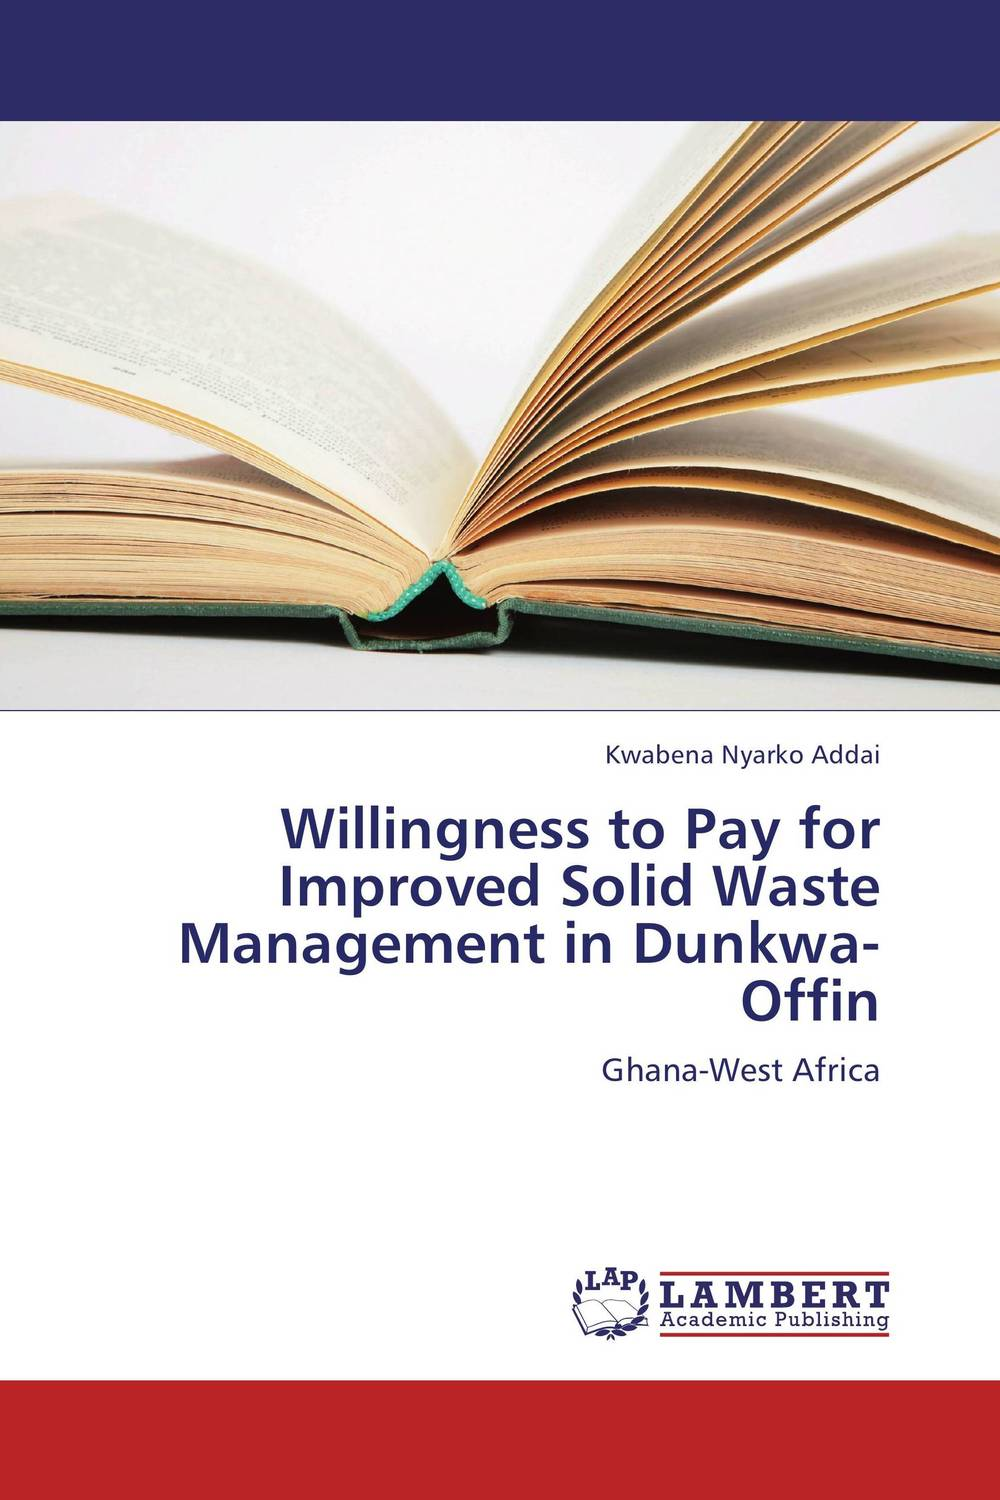 Willingness to Pay for Improved Solid Waste Management in Dunkwa-Offin